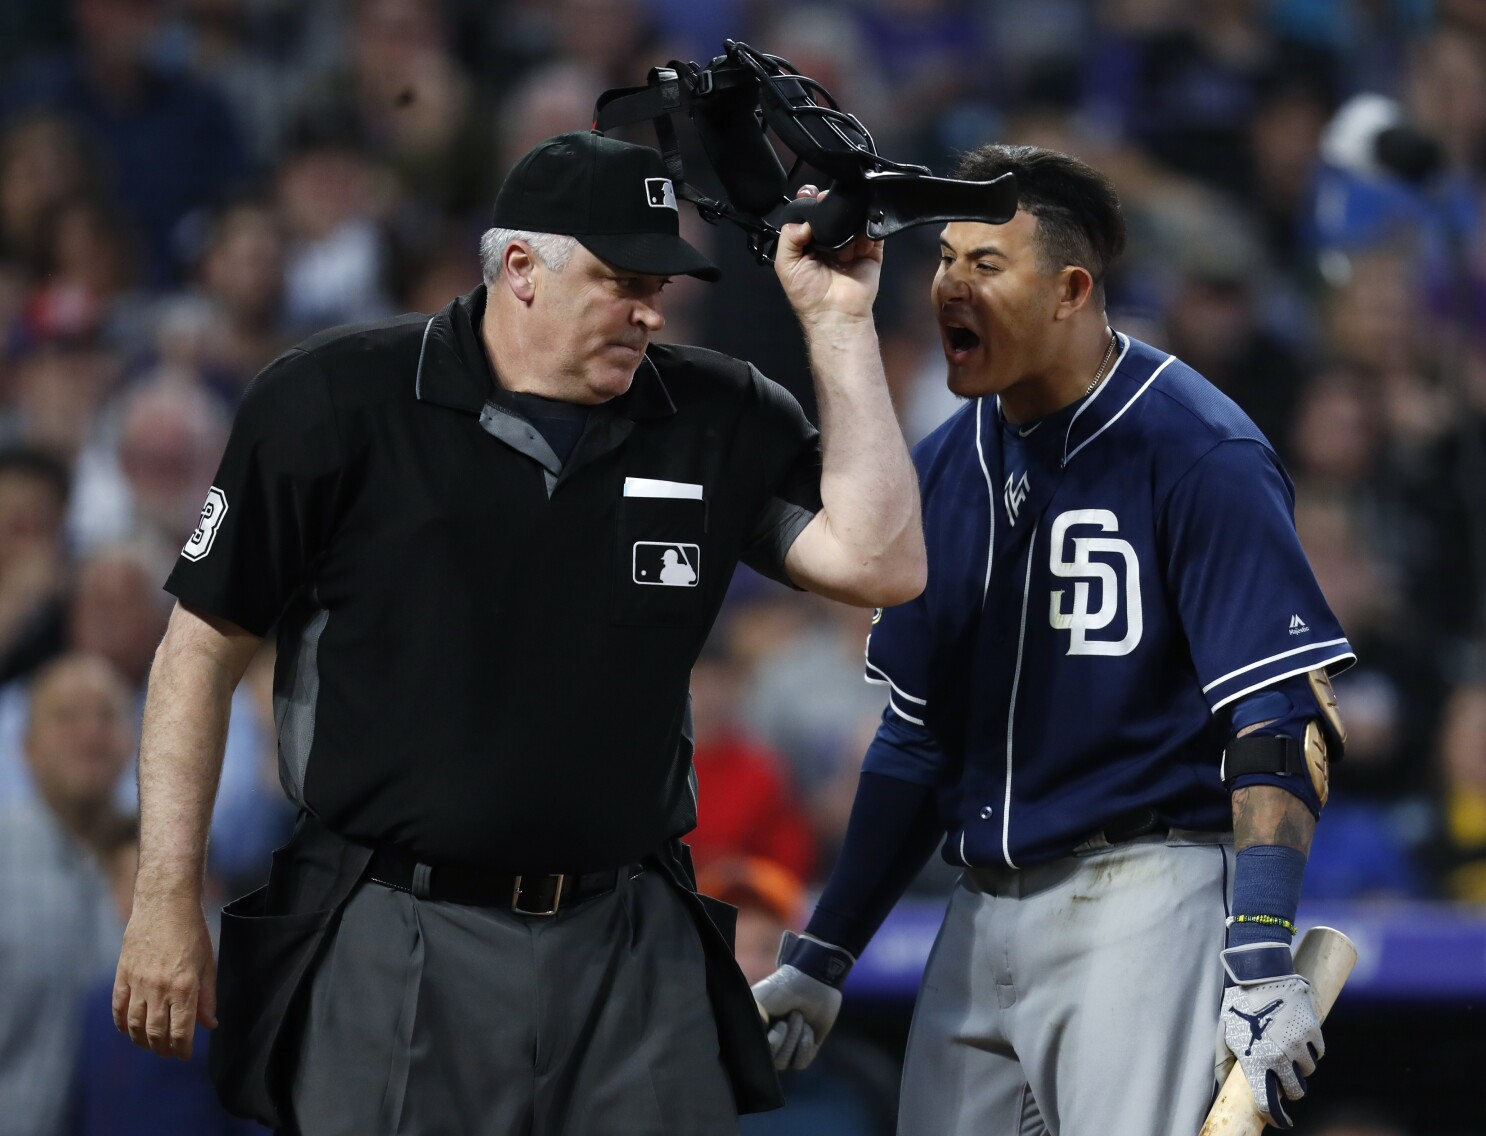 Umpires not happy with Machado ban; Hosmer among players calling ...